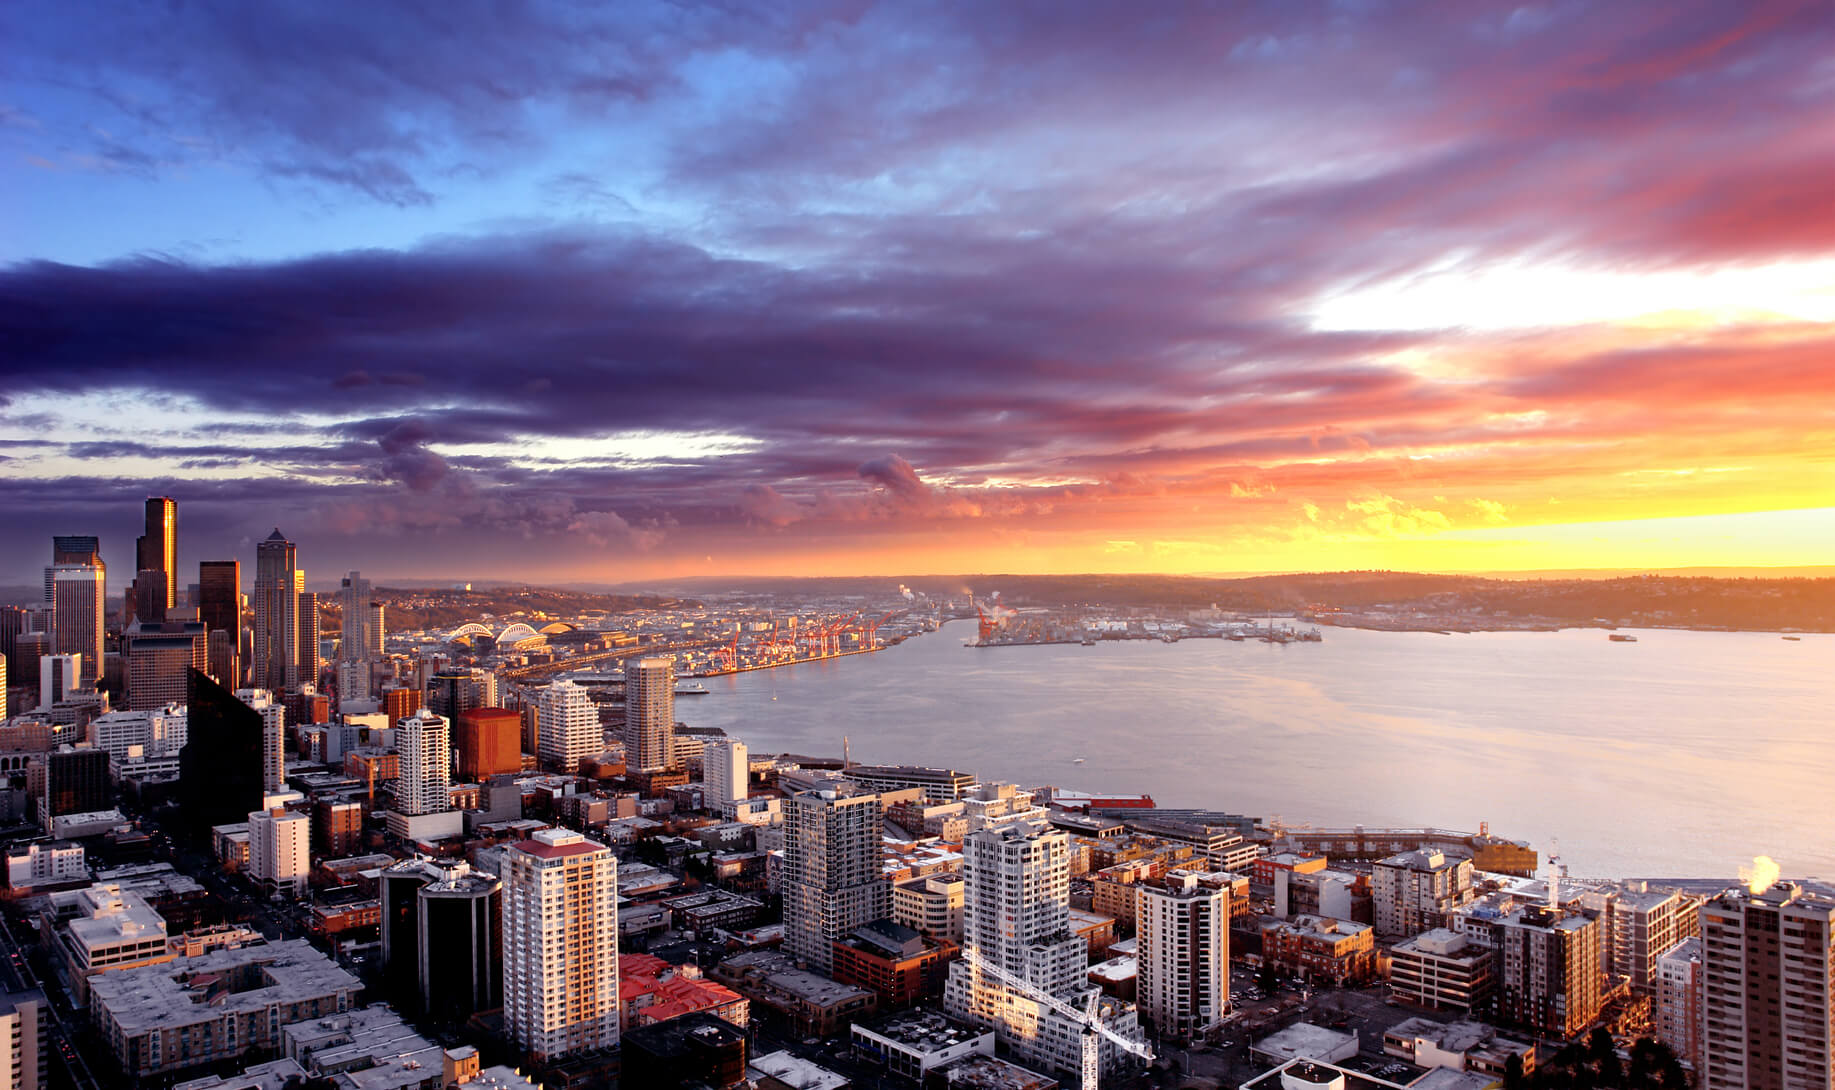 Non-stop from Amsterdam, Netherlands to Seattle, USA for only €366 roundtrip (Aug-Sep dates)